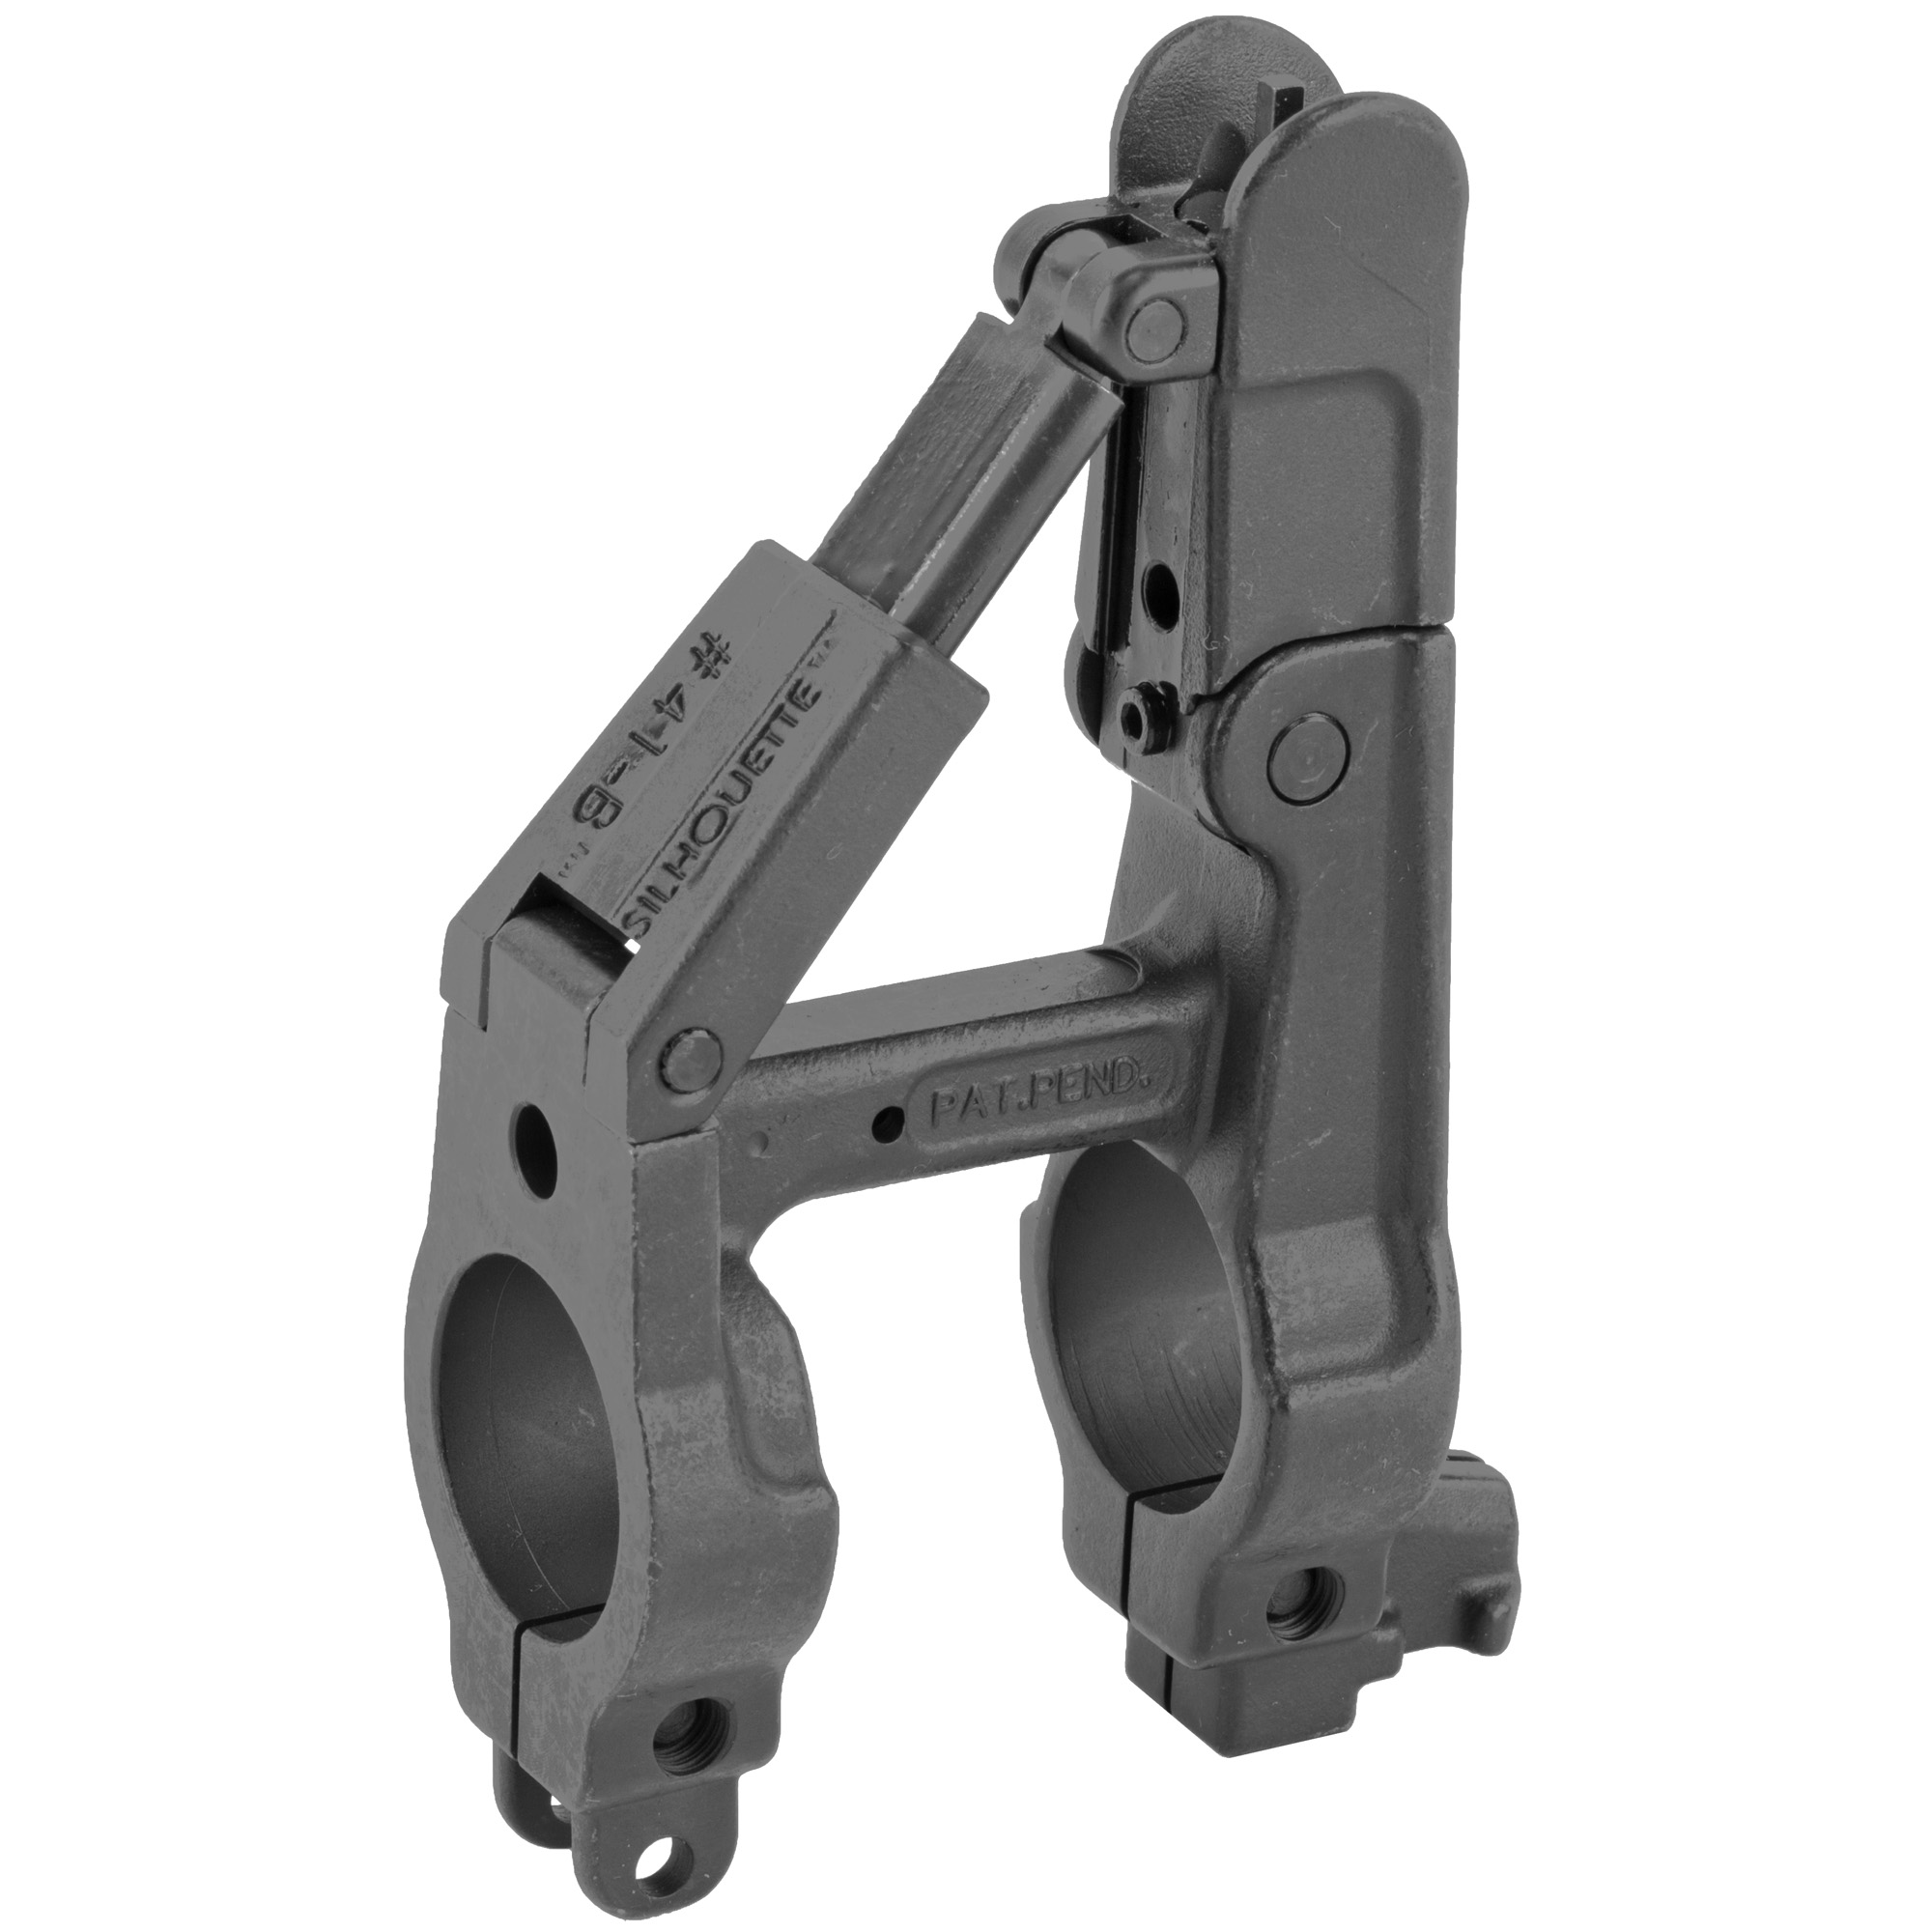 """The NEW A.R.M.S.(R) #41(TM)-B-L SILHOUETTE(TM) Front Folding Sight solves the problem of trying to fold the well known triangle shape of the conventional non folding front sights. Barrel mounted in place. Utilizes a rugged spring loaded angled support system to eliminate getting caught up in brush and other combat hazards. Made of steel and also uses the standard front sight post. Folding Front Sight with integral gas block. Fits Standard size AR15 (750) barrel"""" and has bayonet lug."""